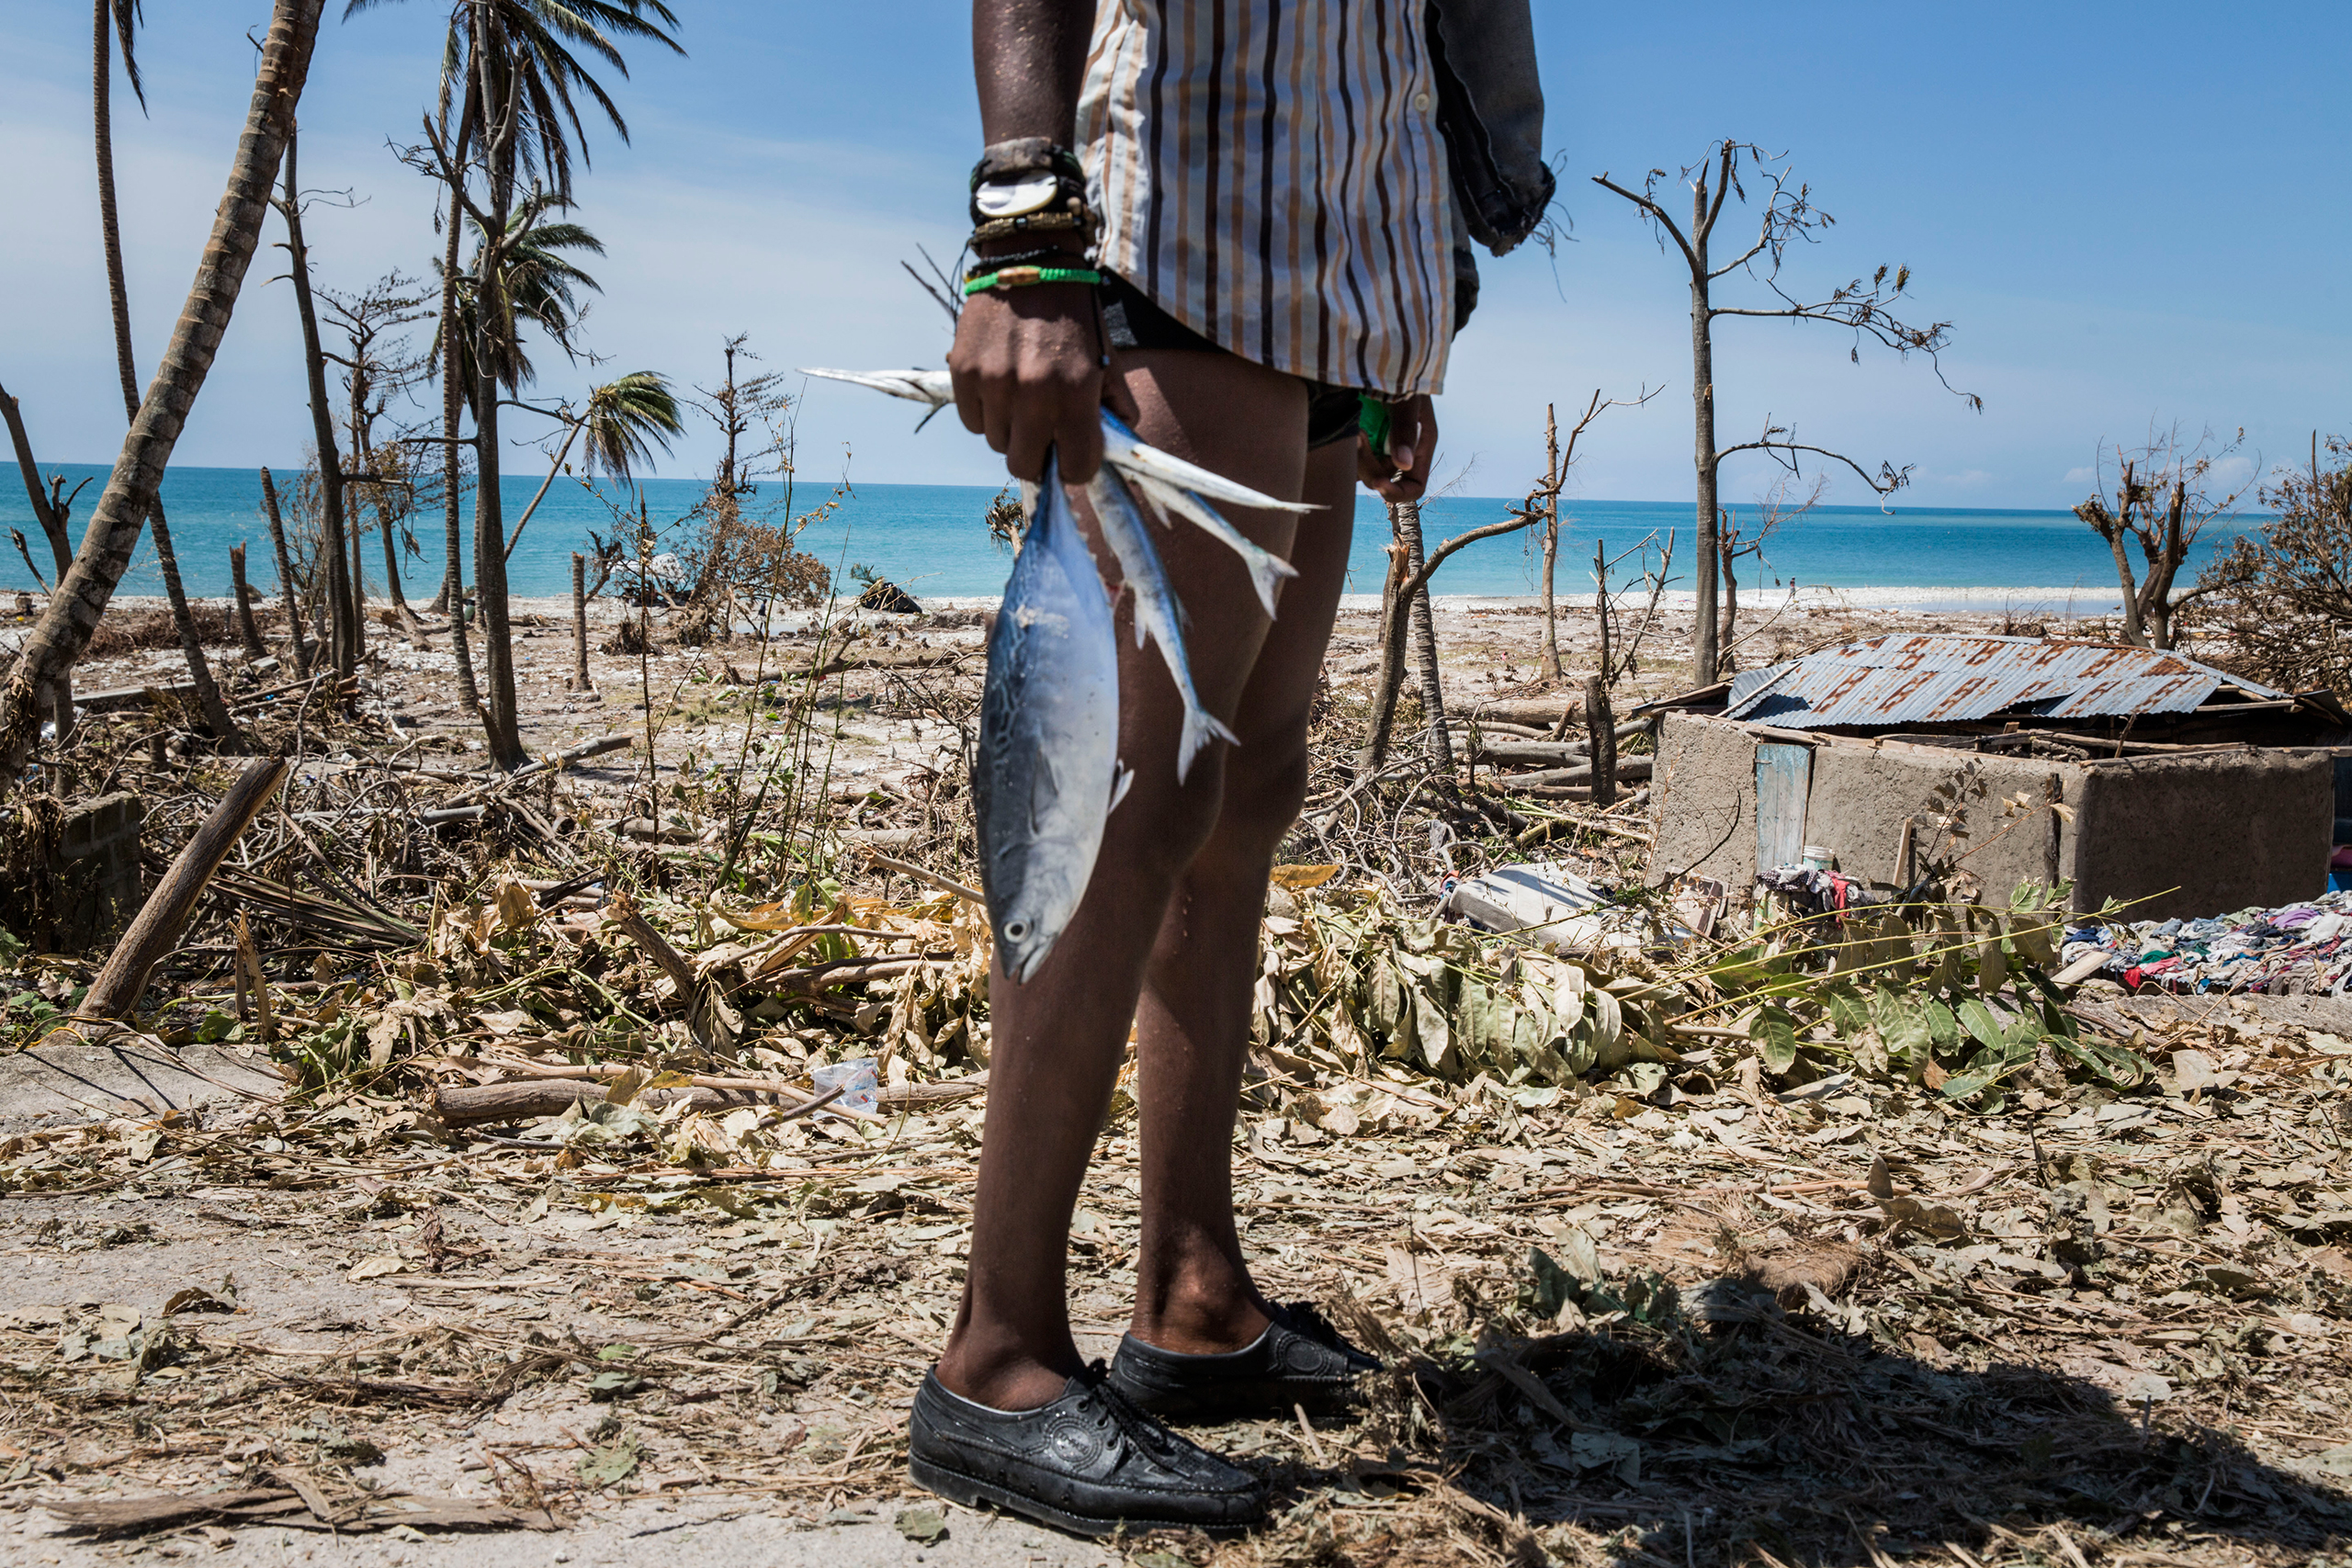 A boy carries a fish in an area that suffered widespread destruction near Port Salut, in southwestern Haiti, on Oct. 8, 2016.